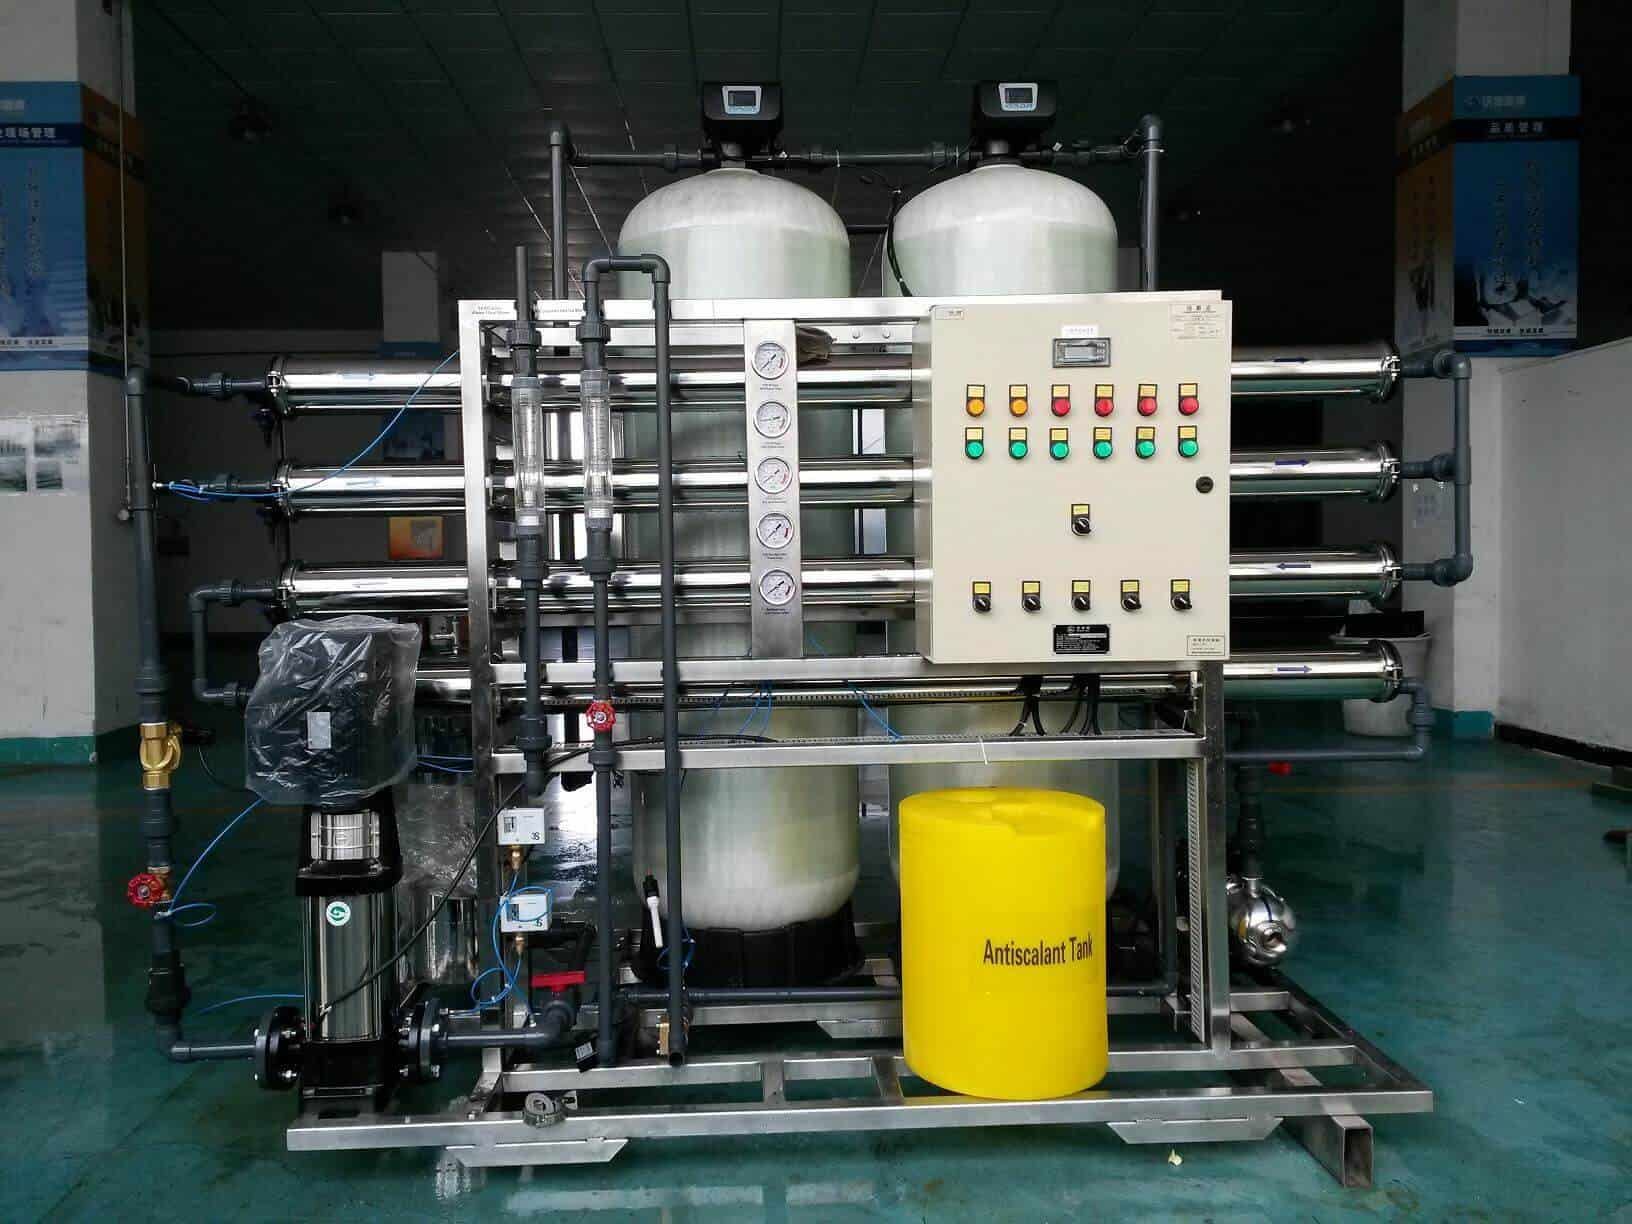 NANOFILTRATION FOR WATER SOFTENING